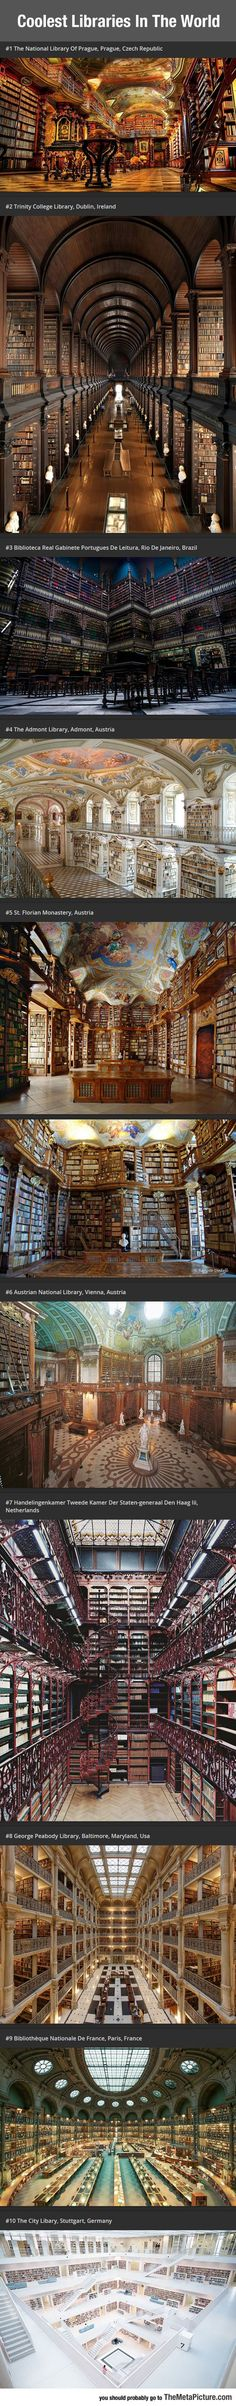 Best Libraries In Th